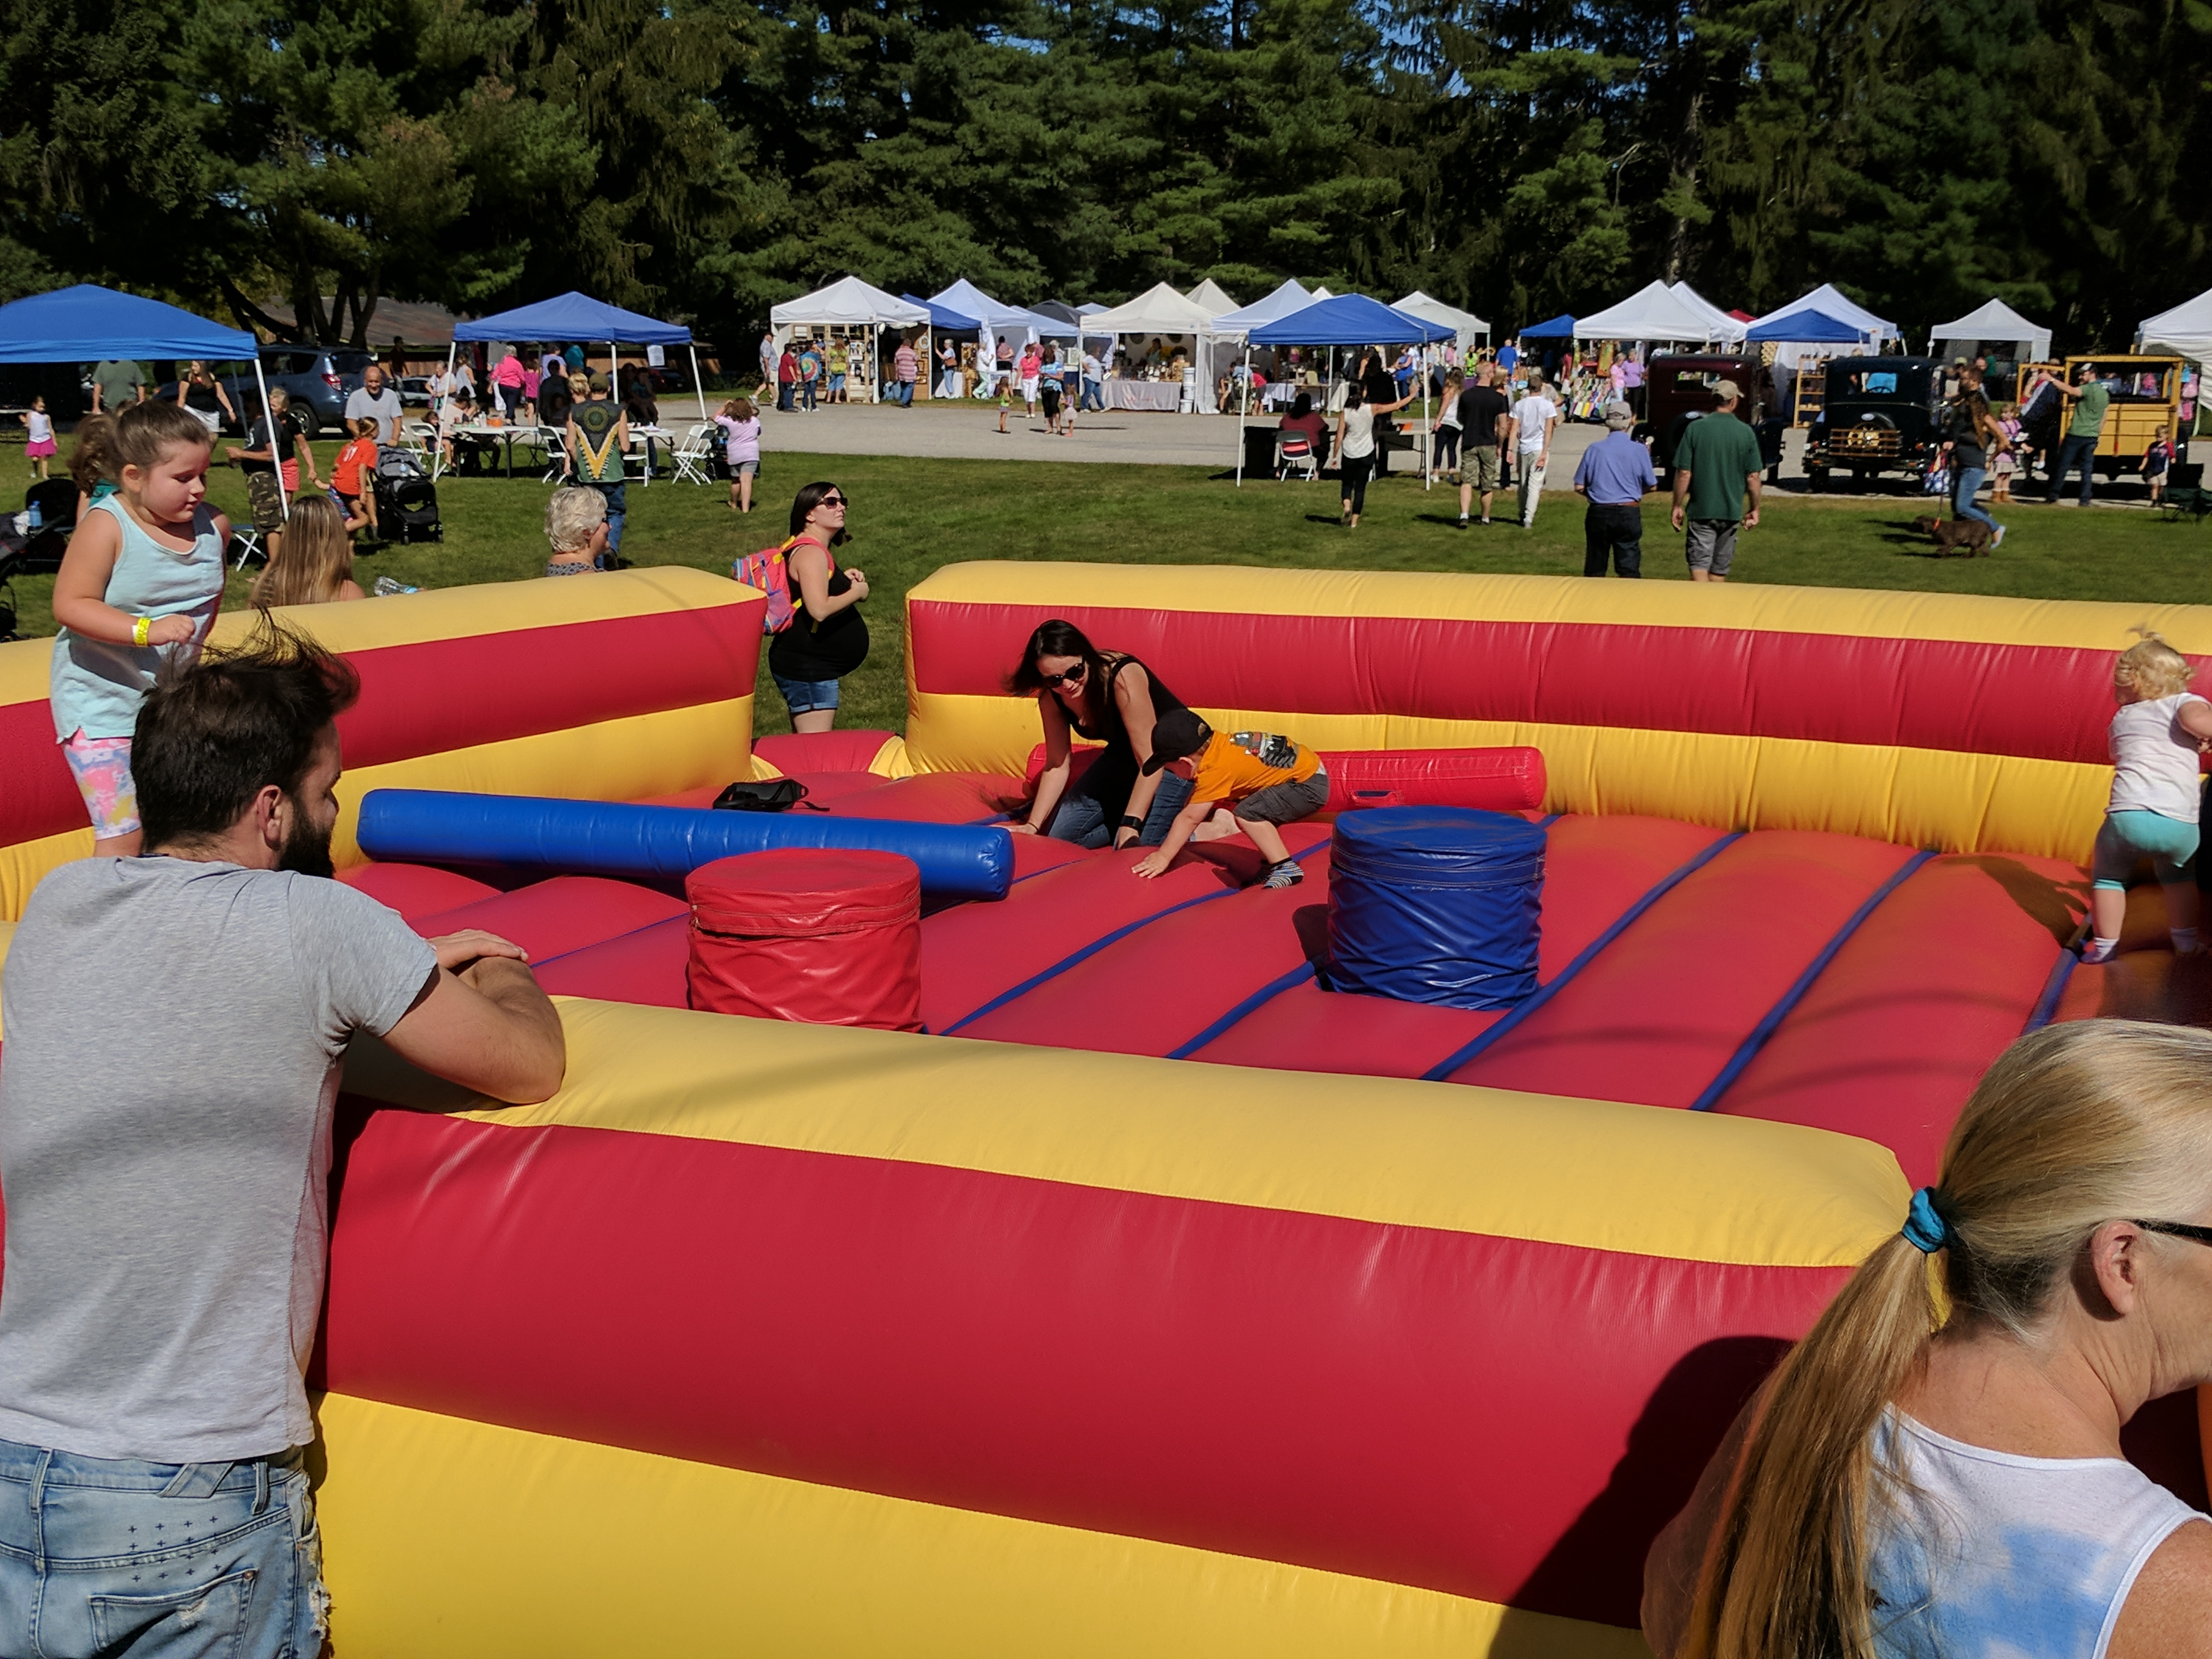 Parents watch their children as they play in the kids' zone at the Alfred Apple Festival at Shaker Hill in Alfred on Saturday. Thousands flowed through over Saturday and Sunday to stop by the festival. RYDER SCHUMACHER/Journal Tribune